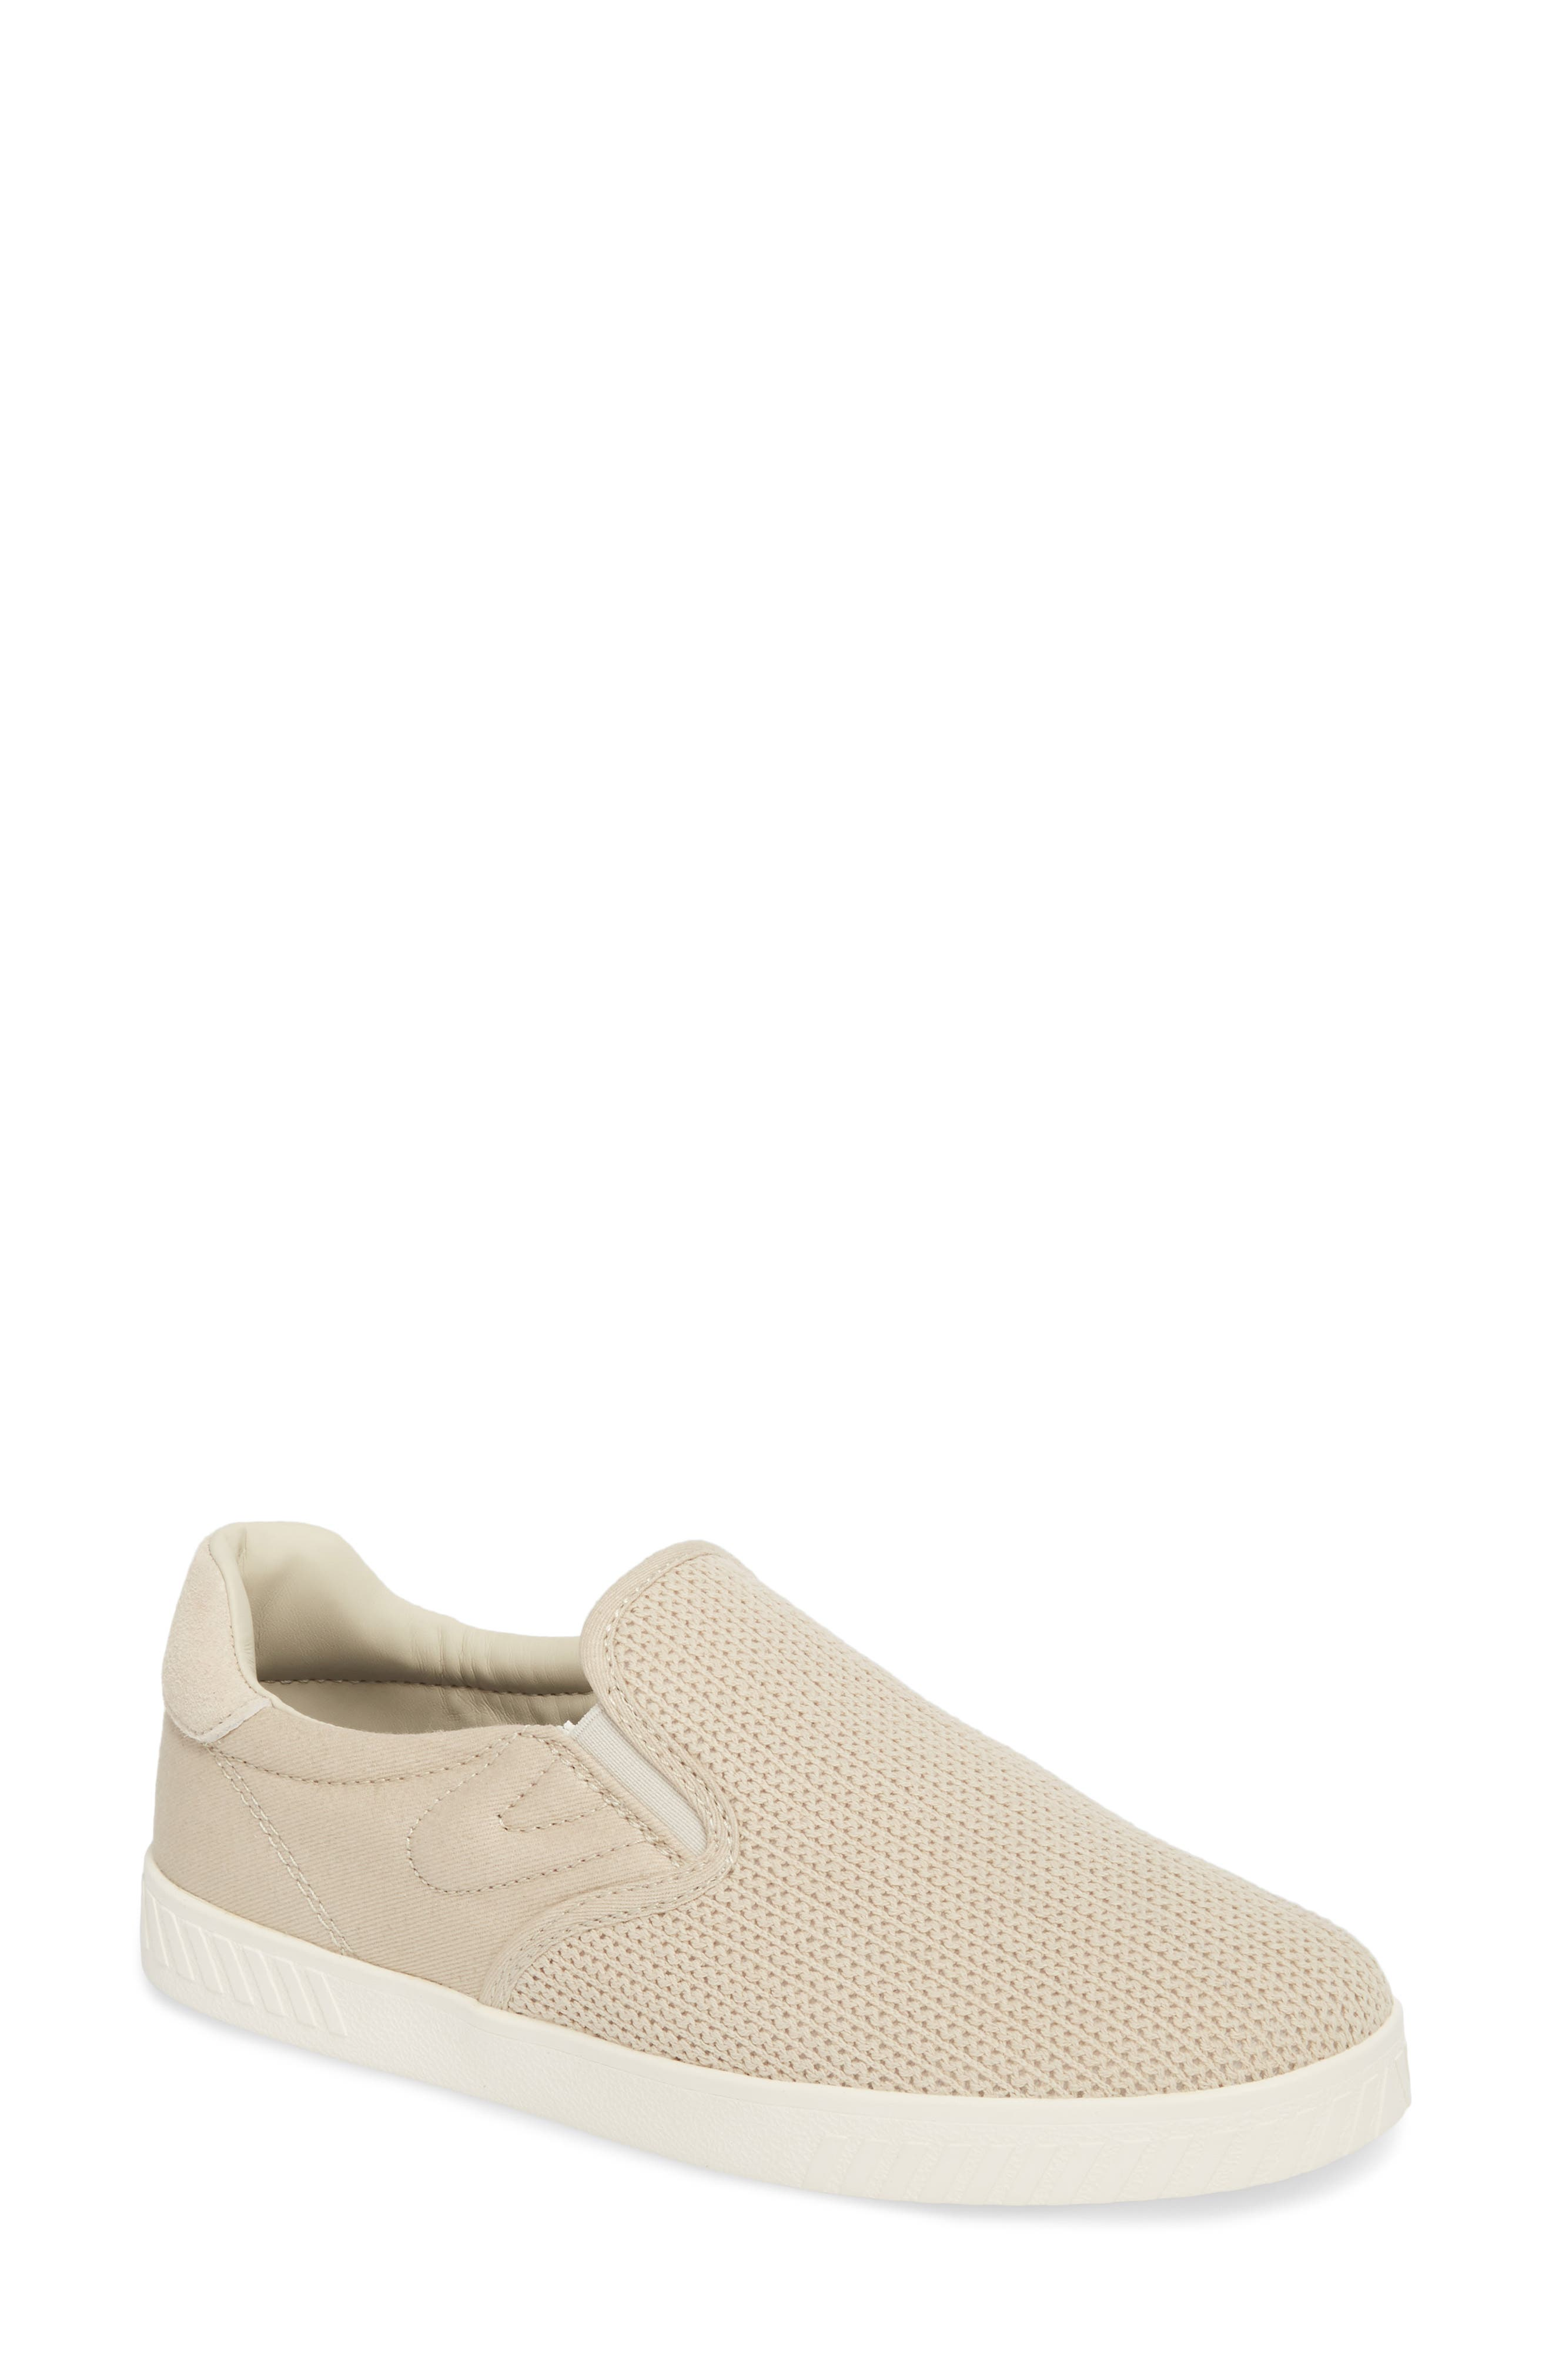 Cruz Mesh Slip-On Sneaker,                             Main thumbnail 3, color,